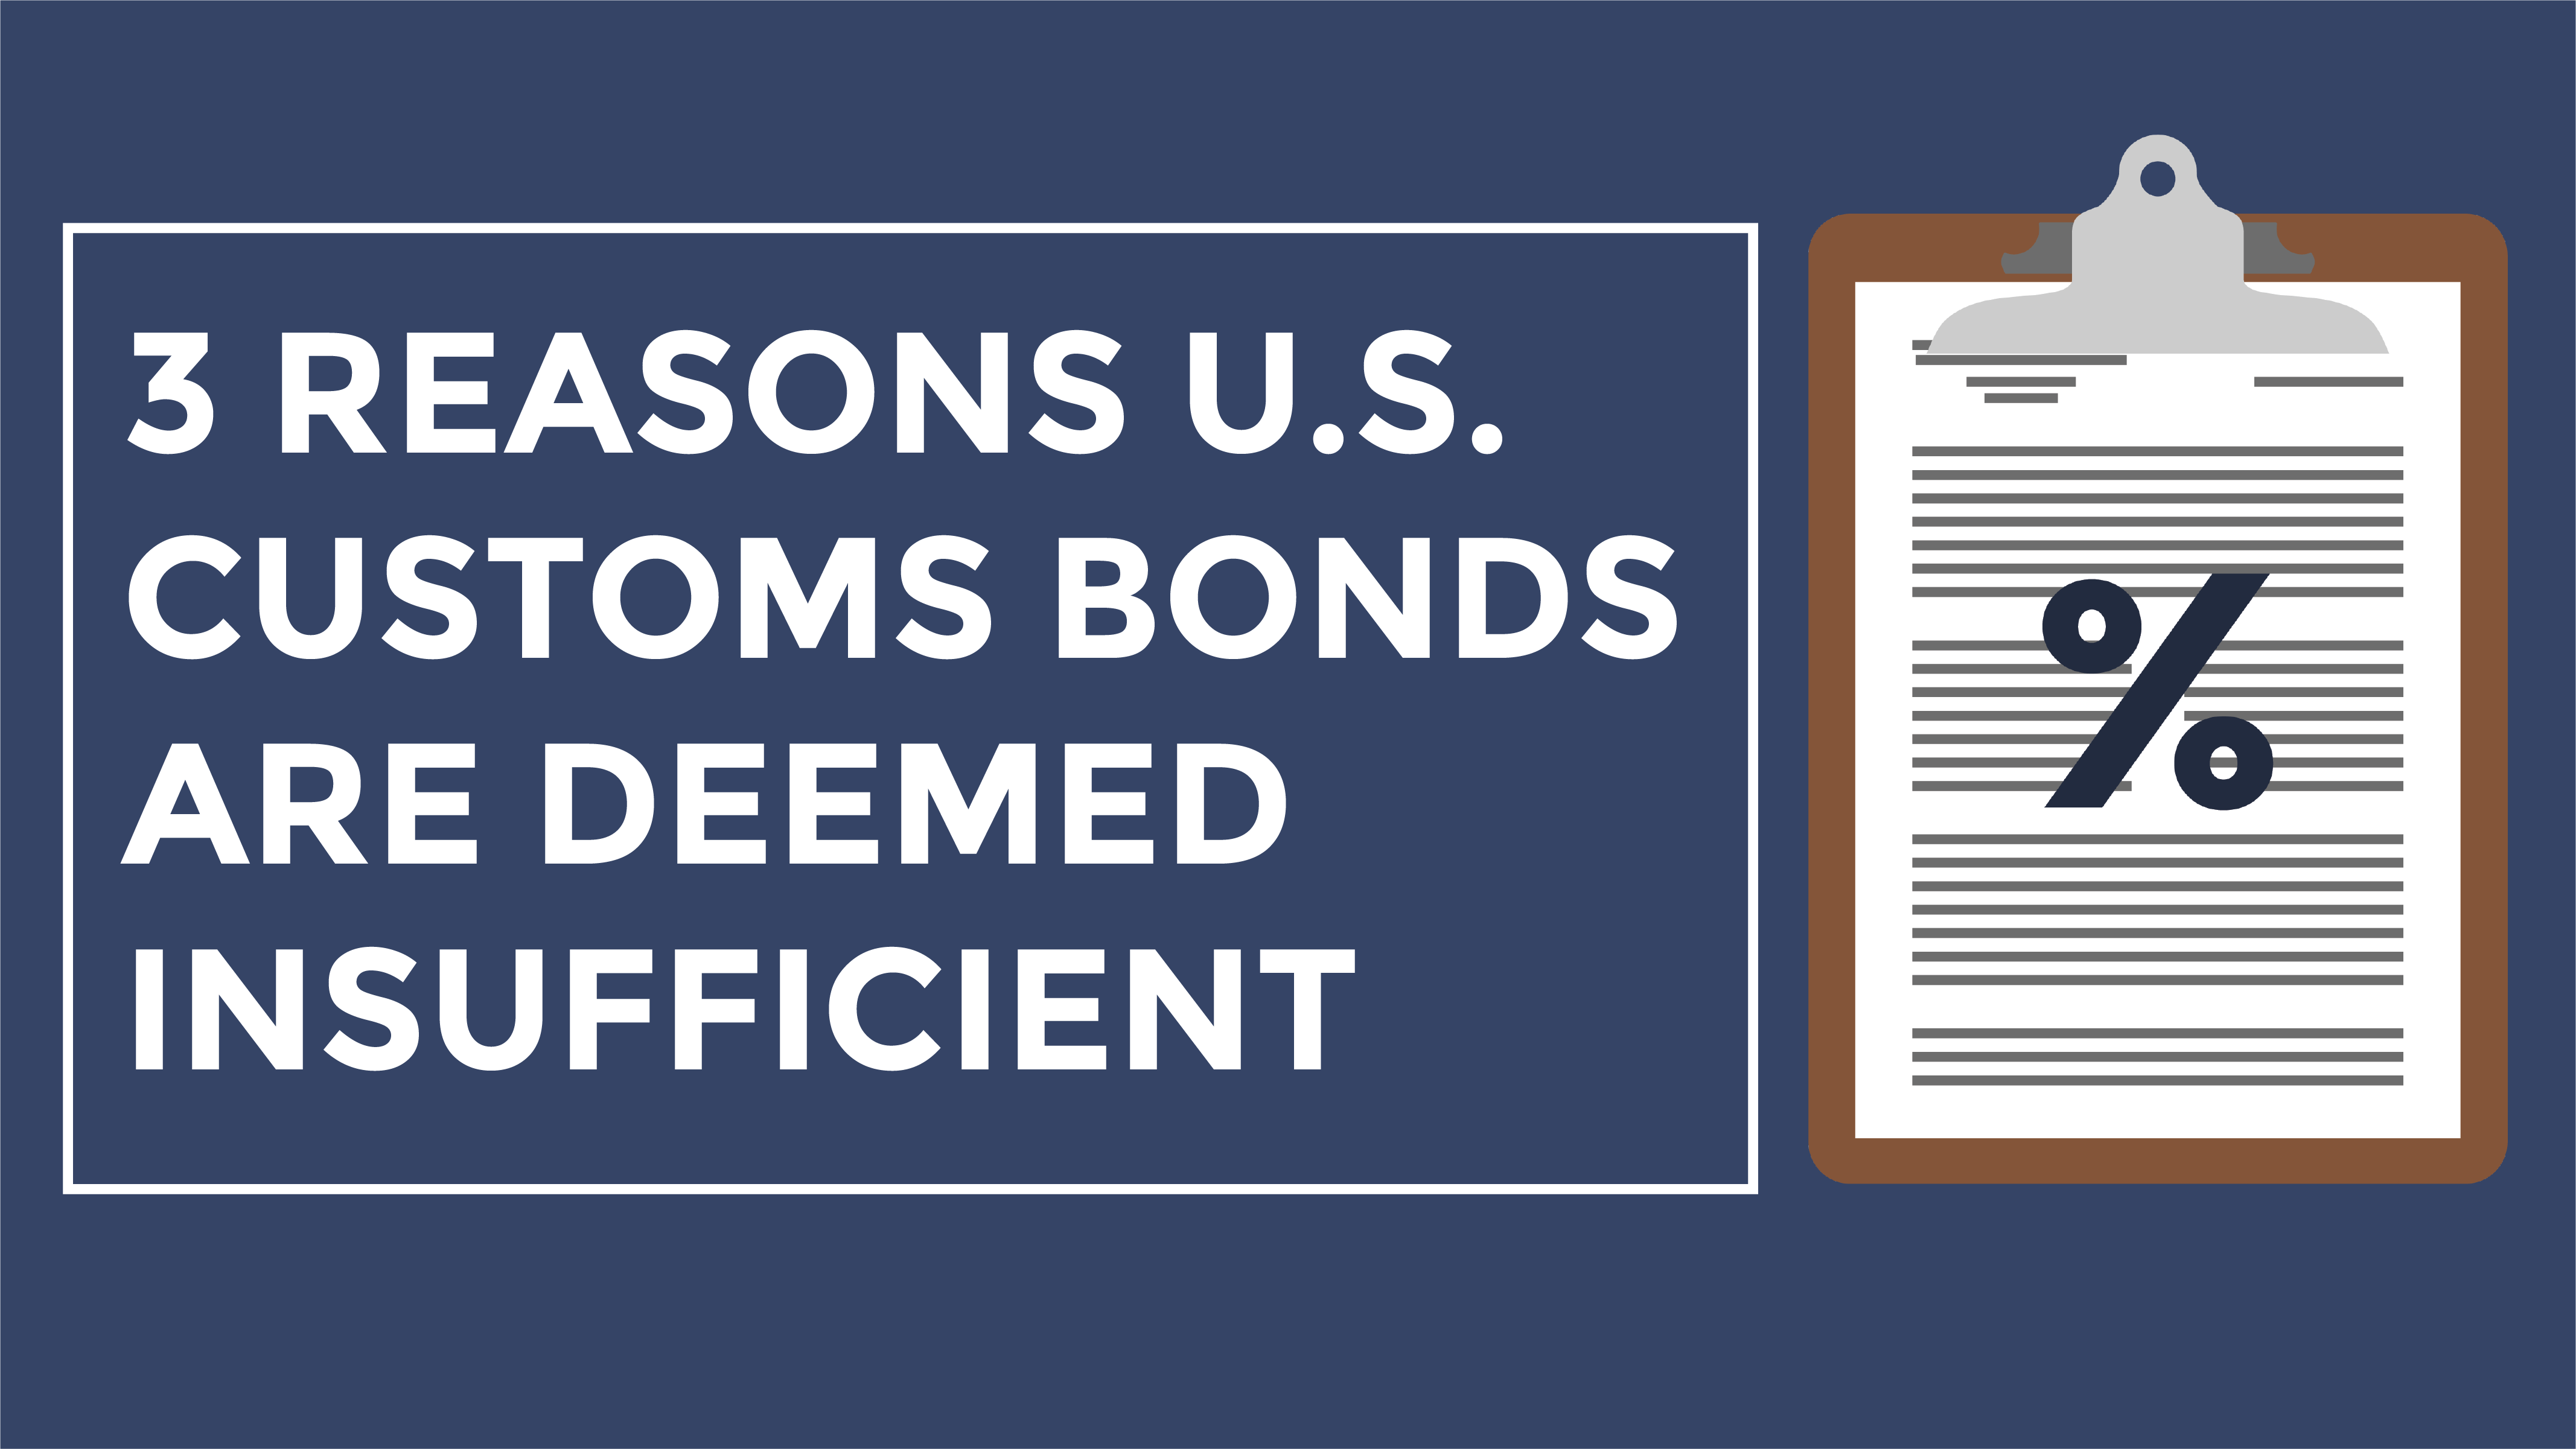 Trade Risk Guaranty provides insight on the 3 most common reasons your bond is deemed insufficient.